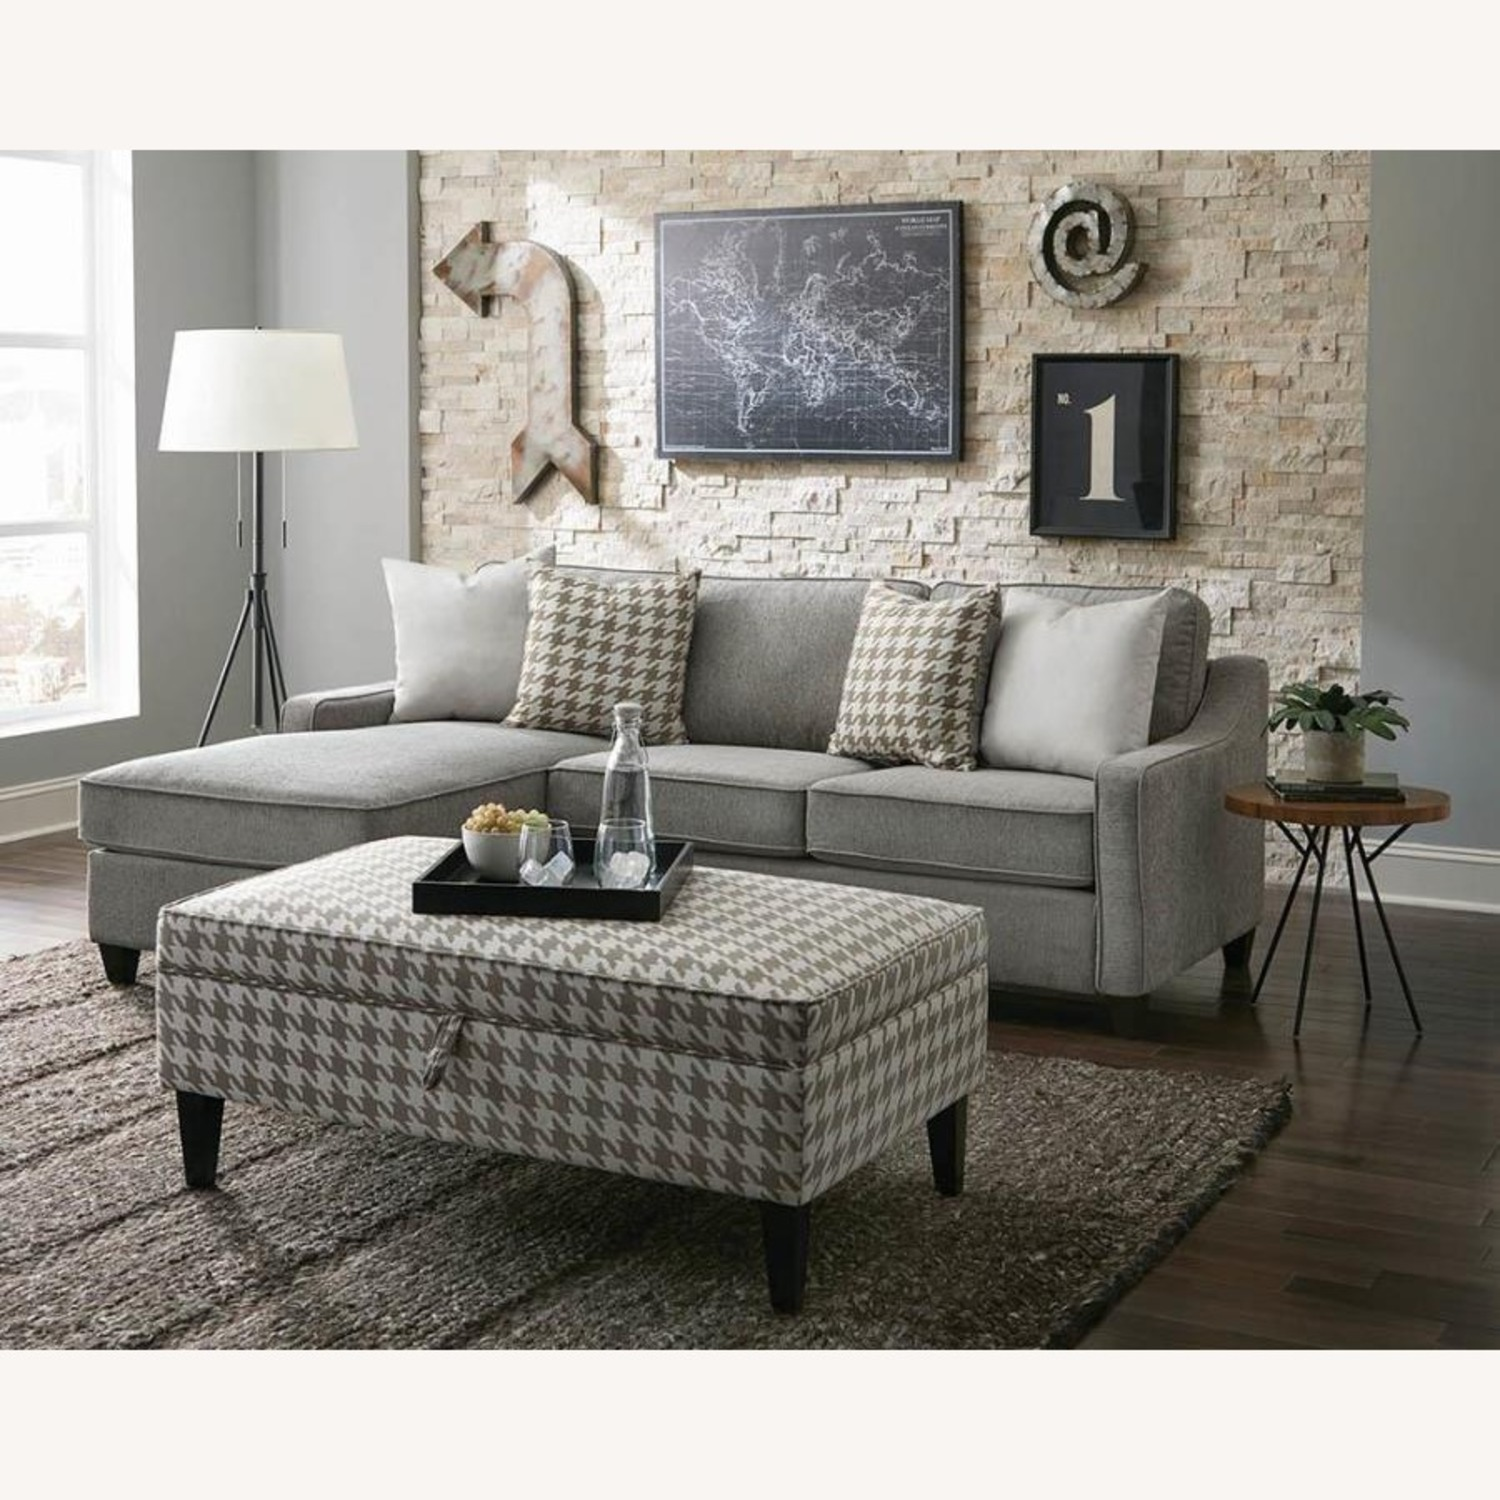 Sectional In Charcoal Chevron Dobby Upholstery - image-12